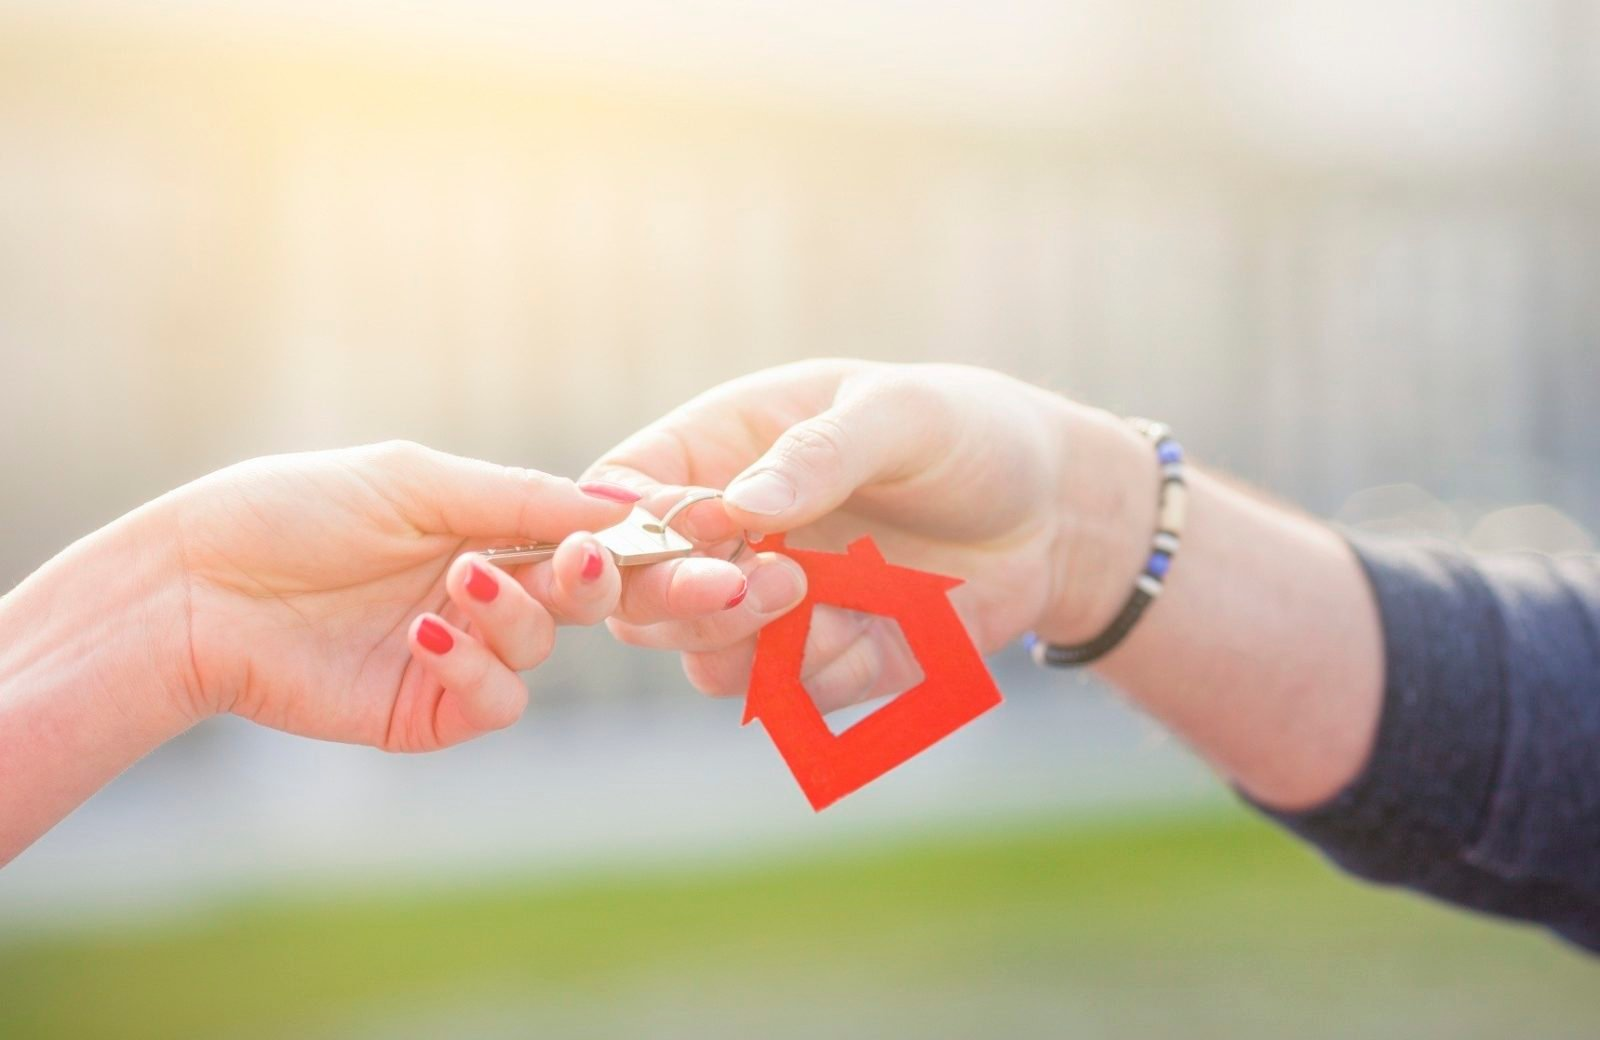 New Homeowner? Here's What You Need to Know